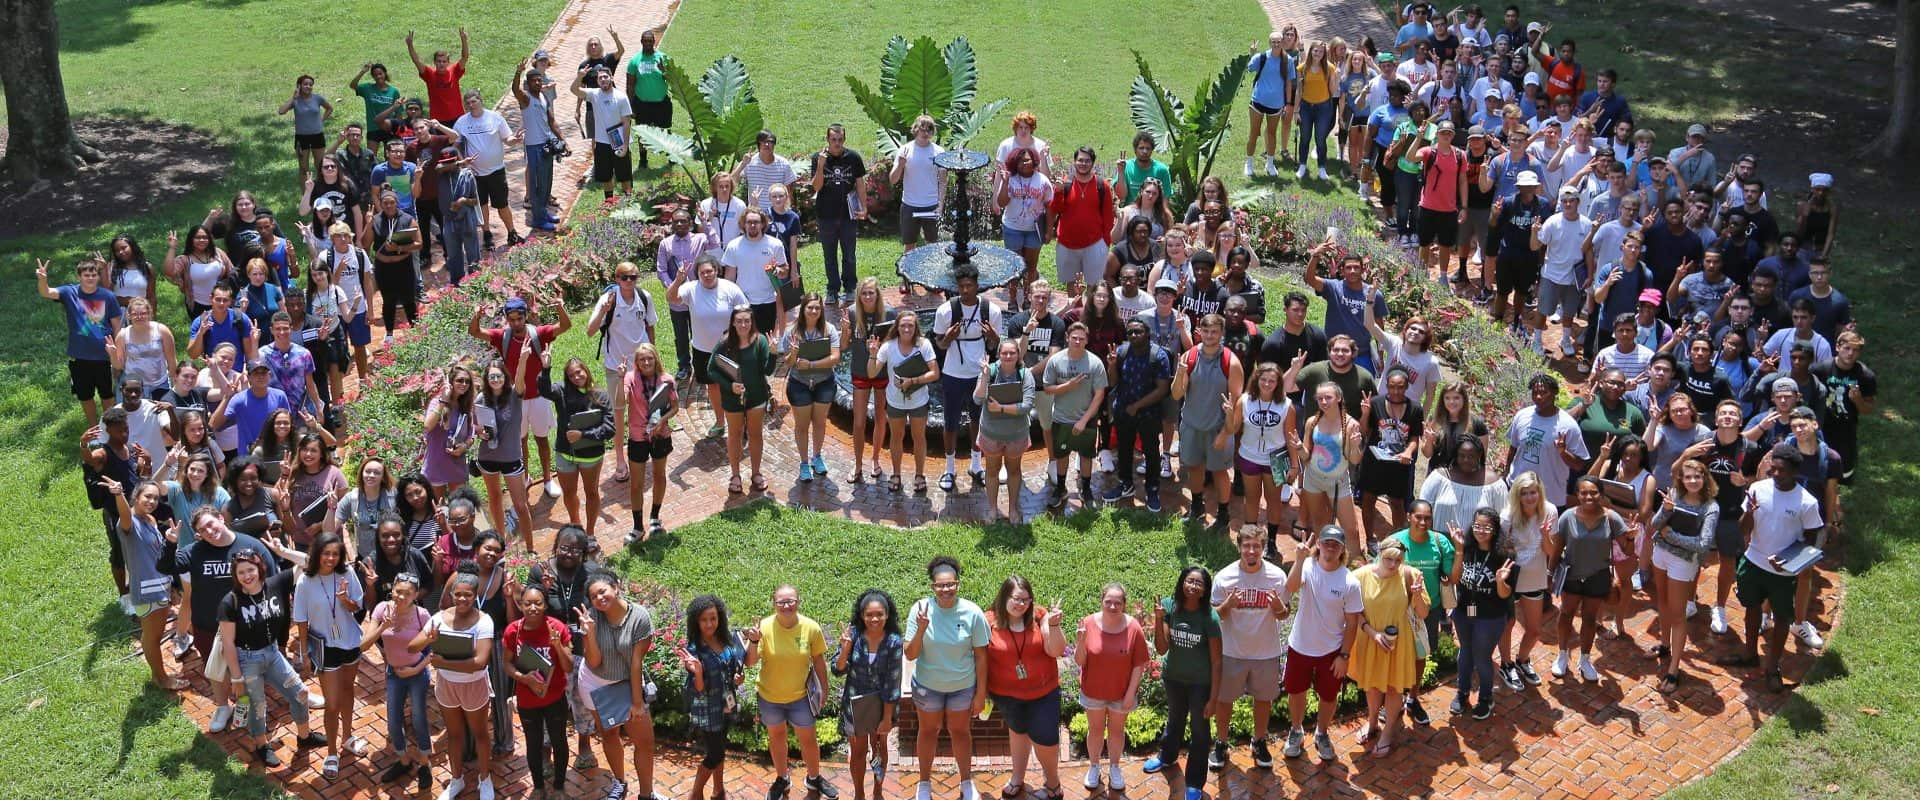 The Class of 2017 poses for a group photo